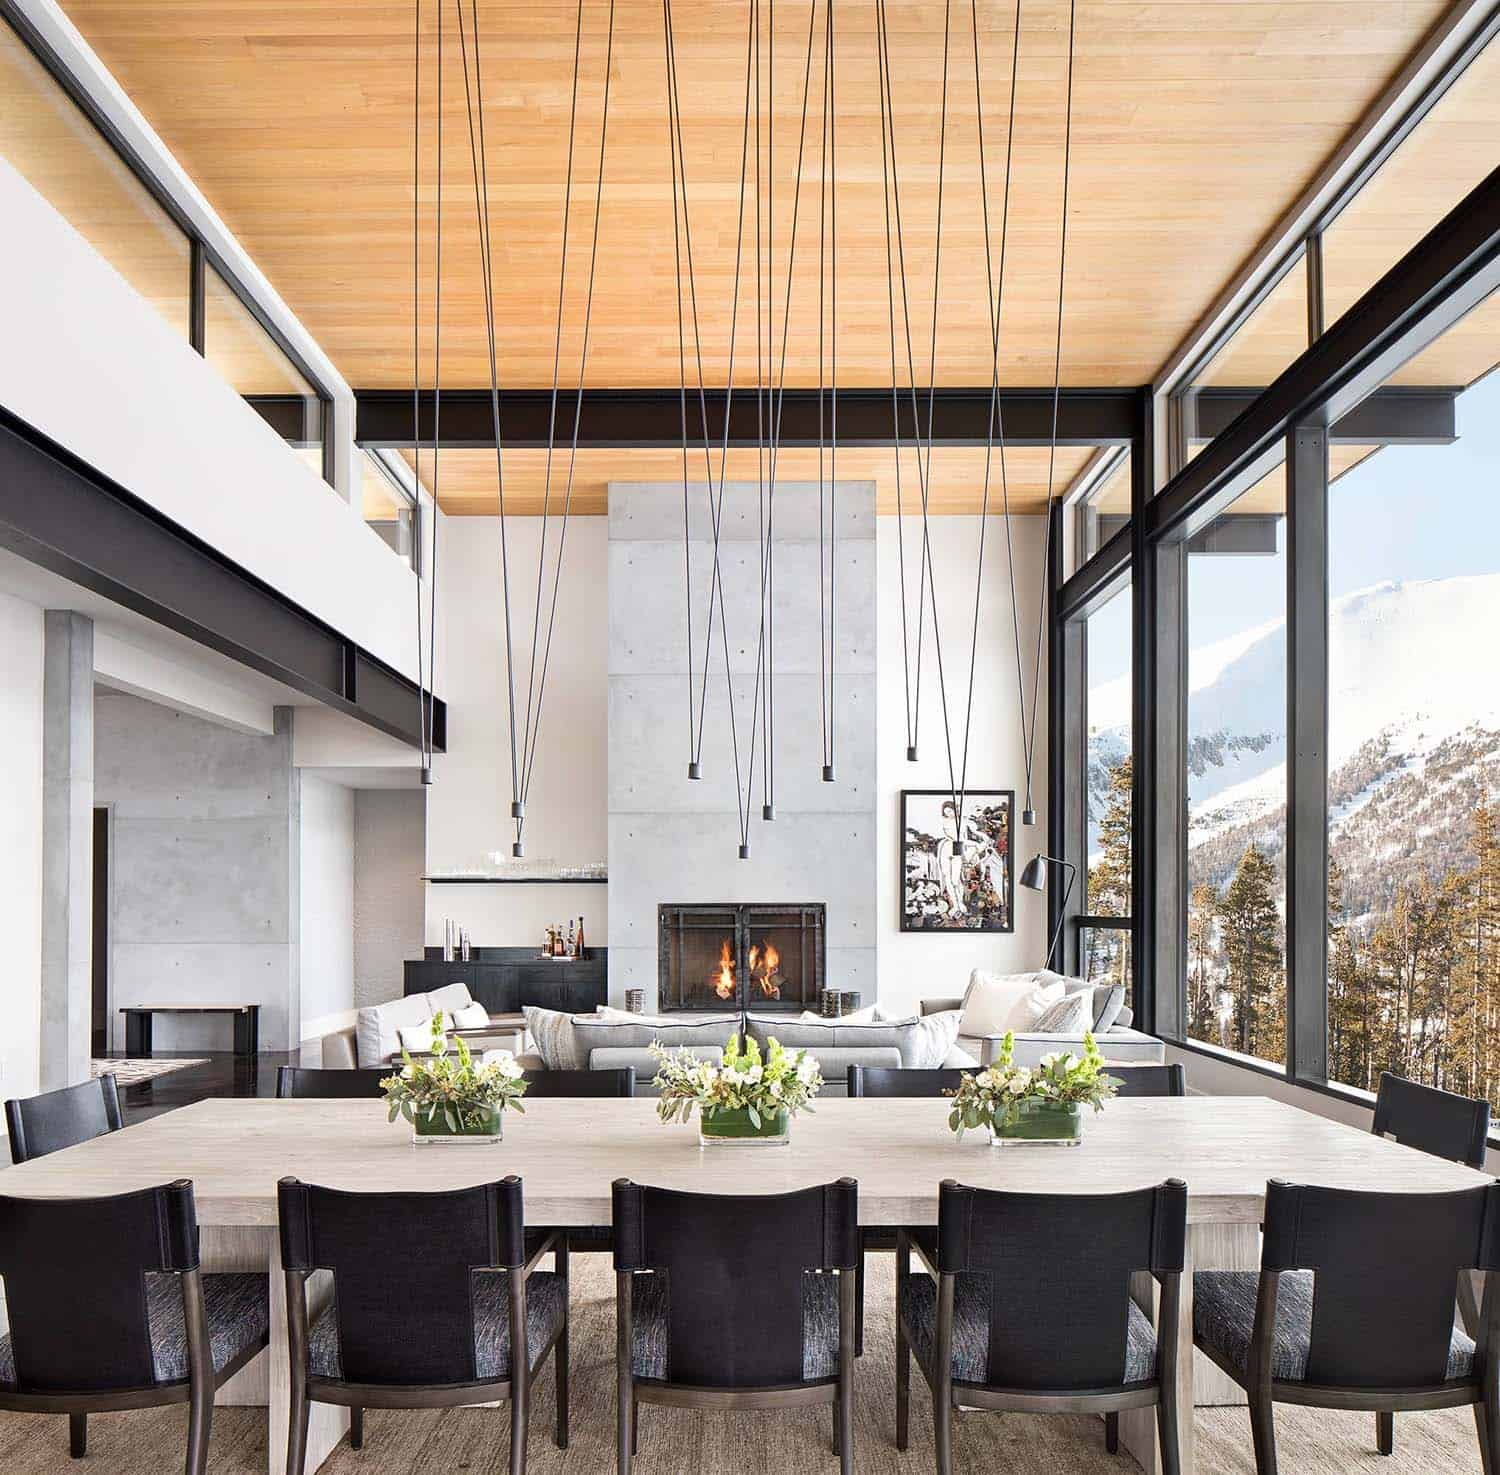 51 Modern Living Room Design From Talented Architects: Modern Mountain Home Boasts Chic And Stylish Living In Montana